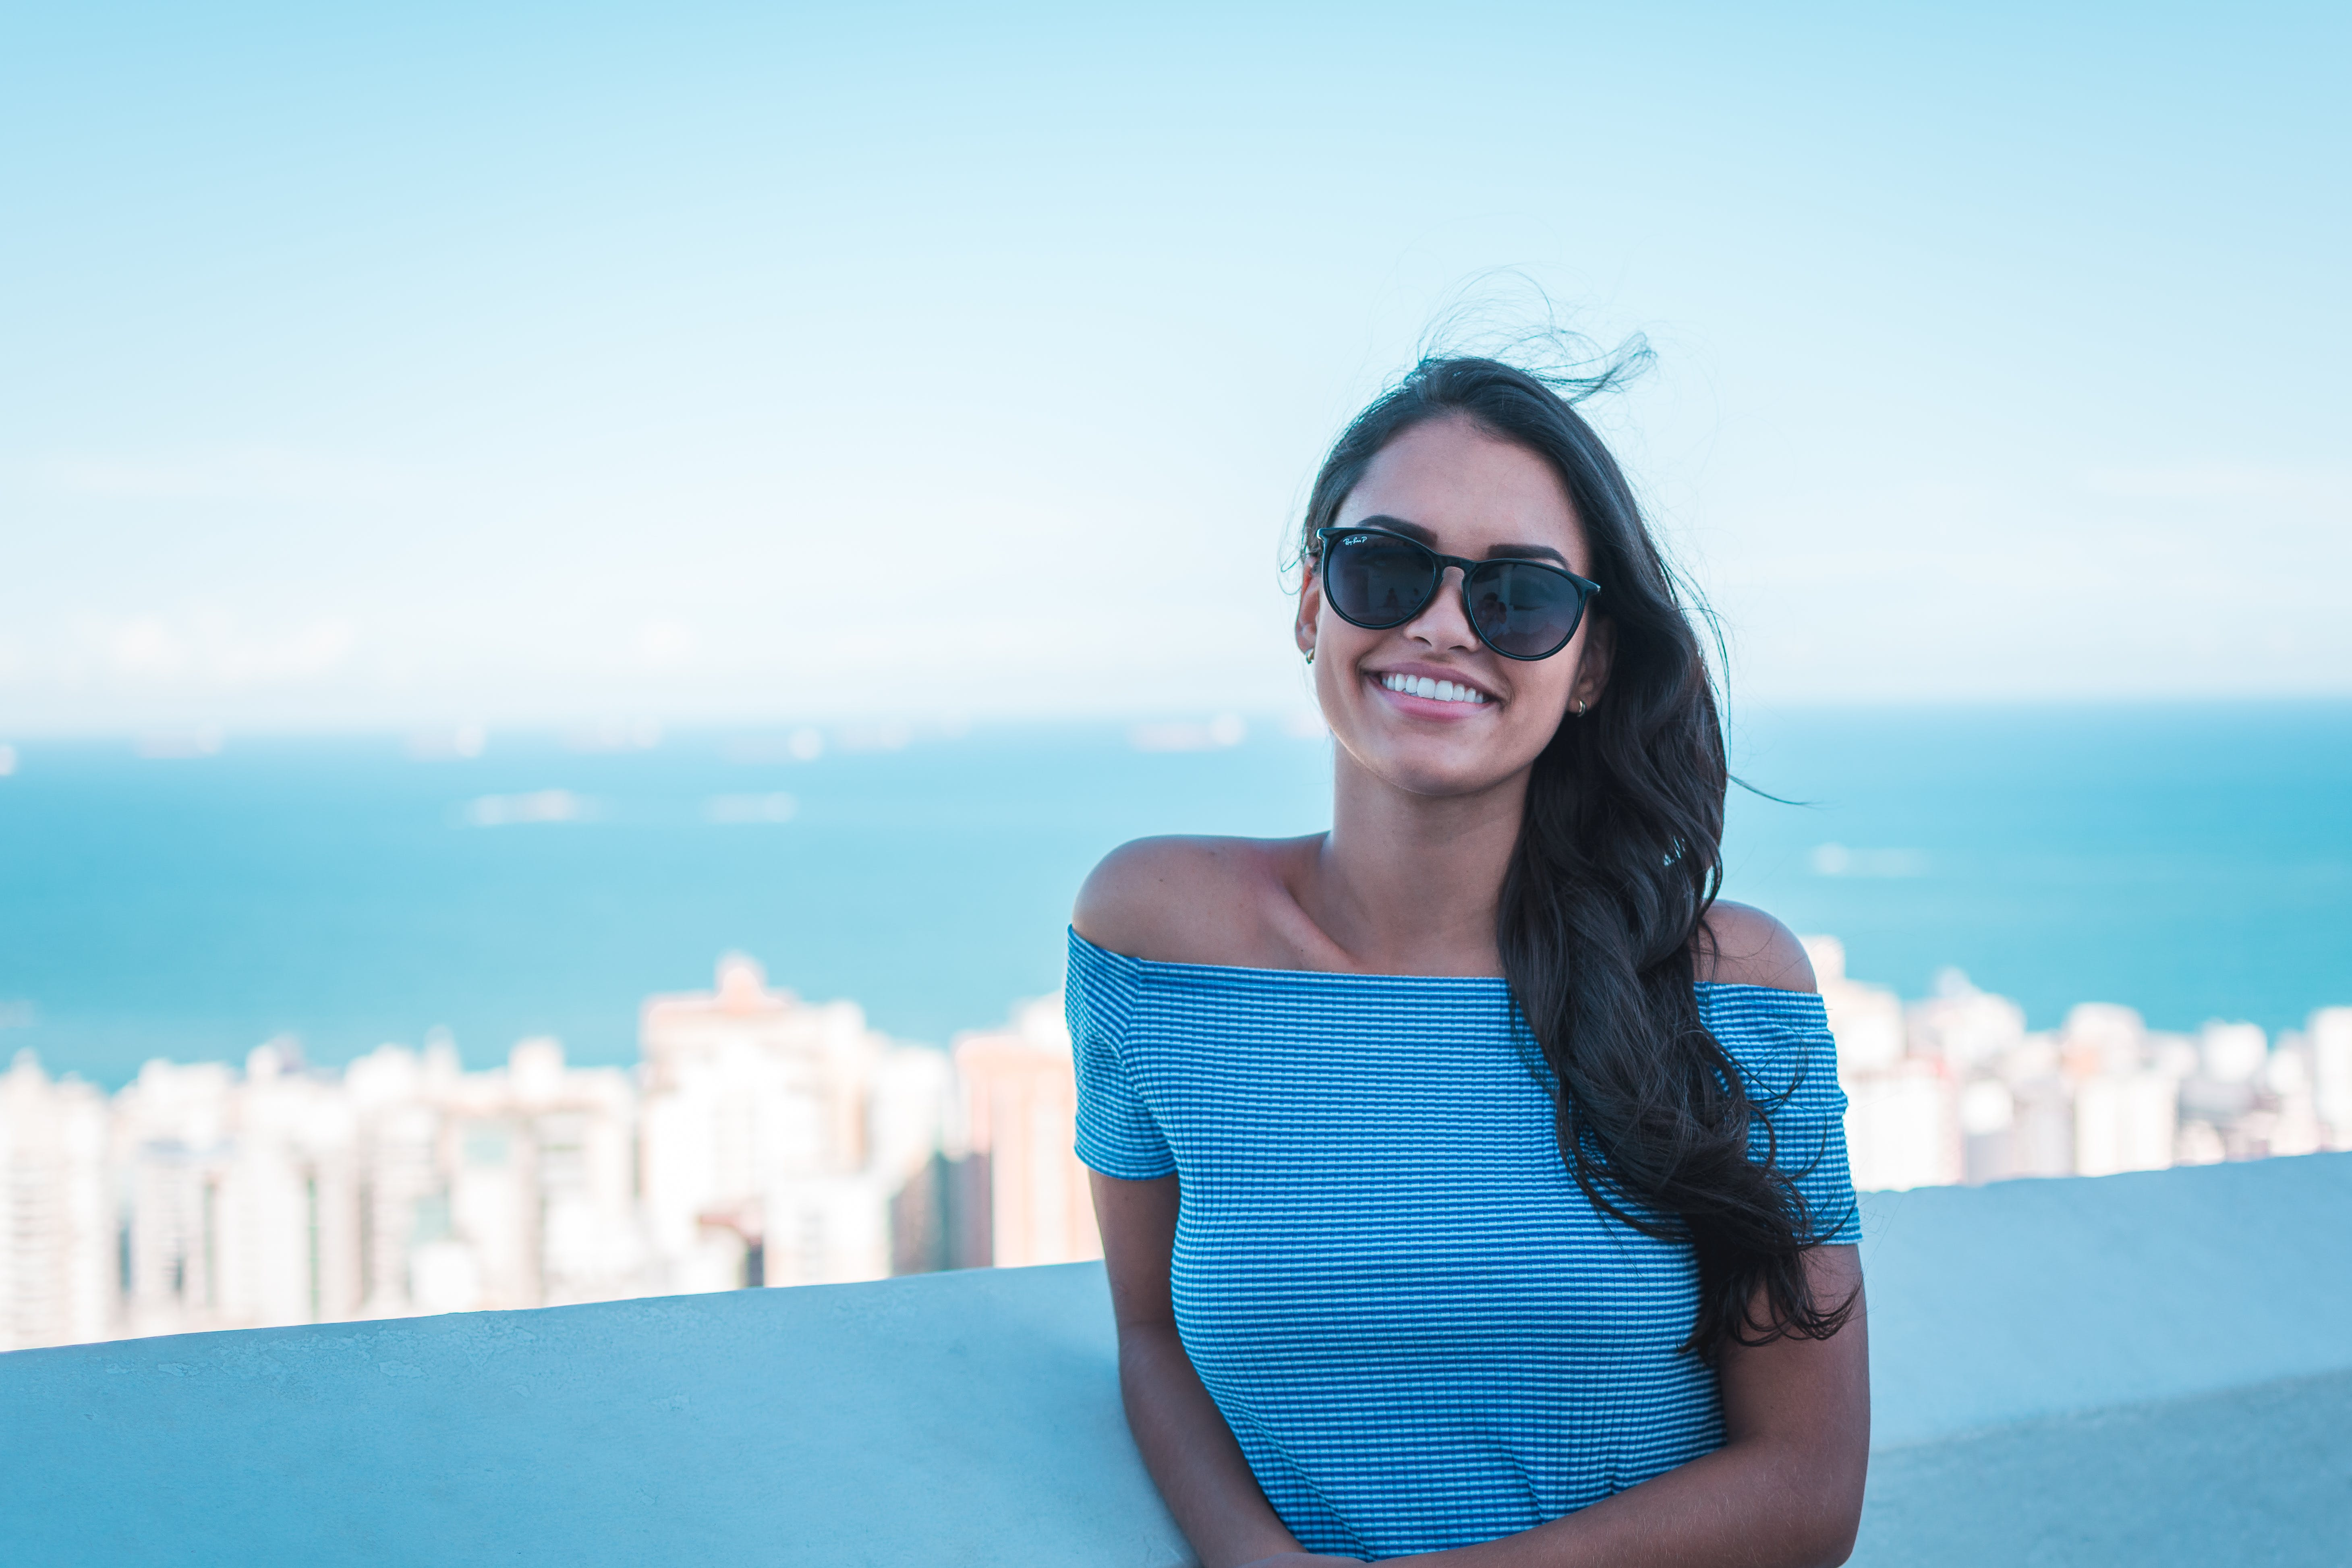 Woman Wearing Blue Off-shoulder Top Smiling